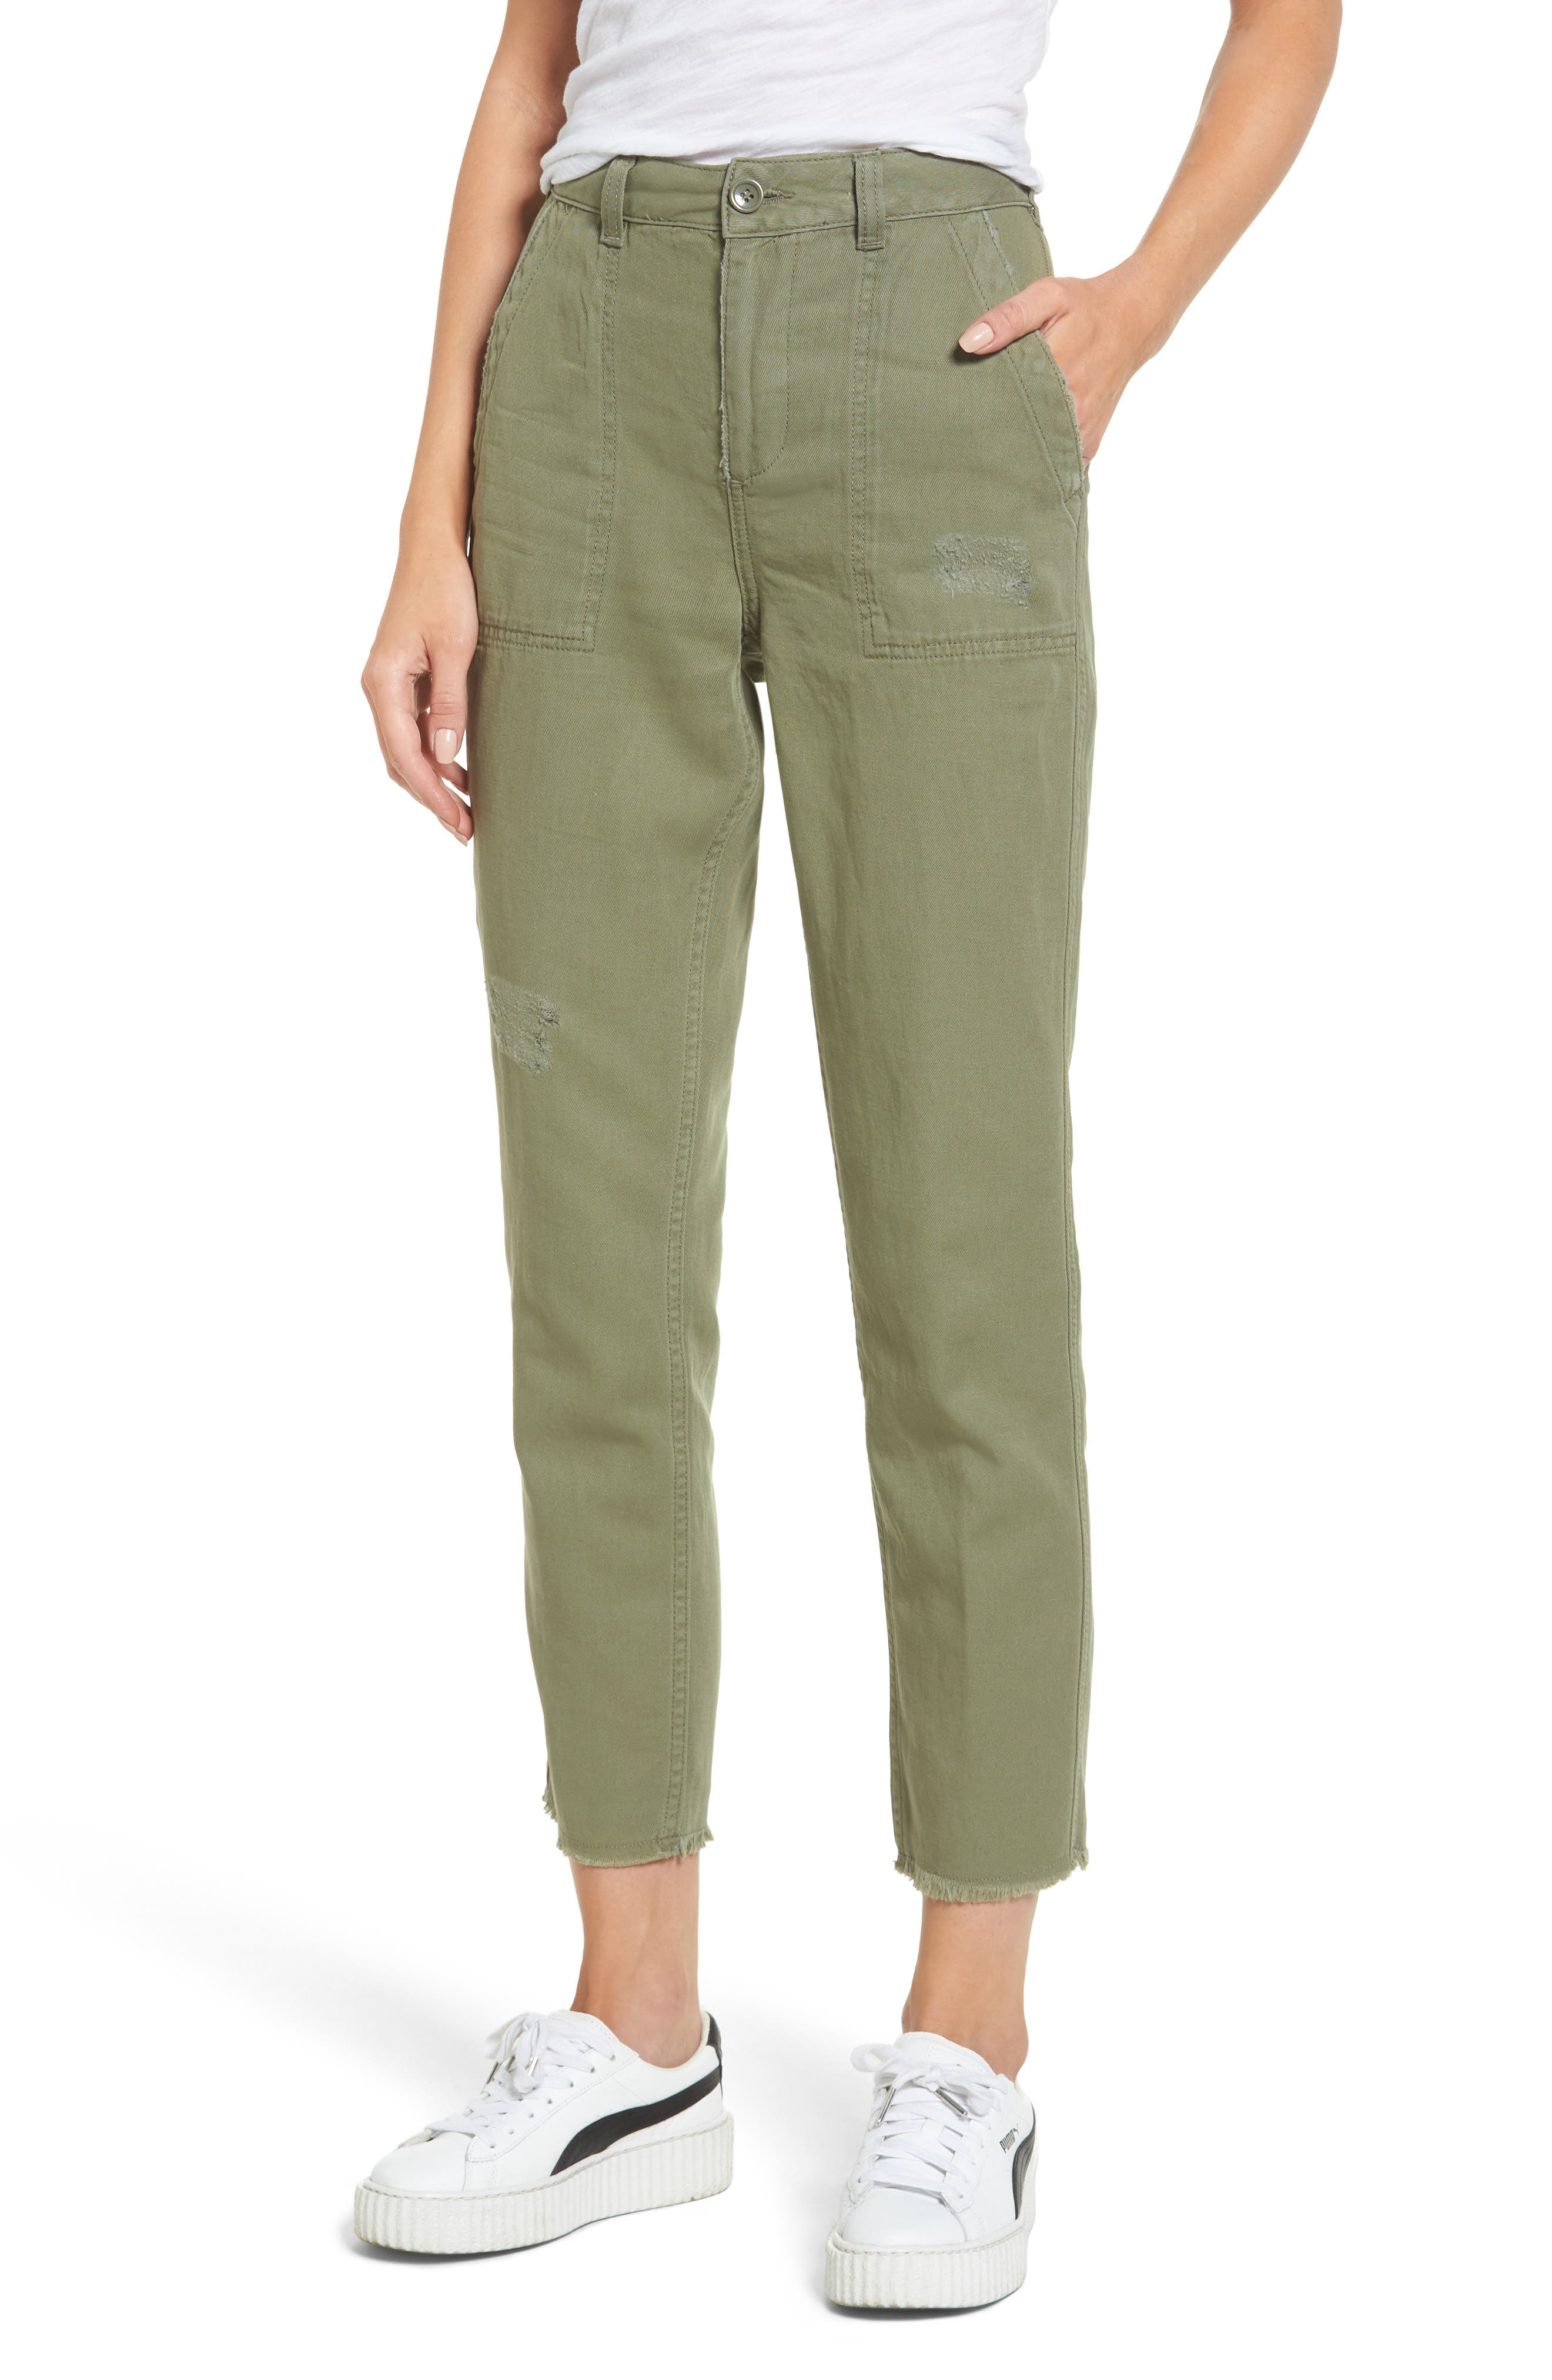 Alternate Image 1 Selected - Topshop Luca Ulility Trousers